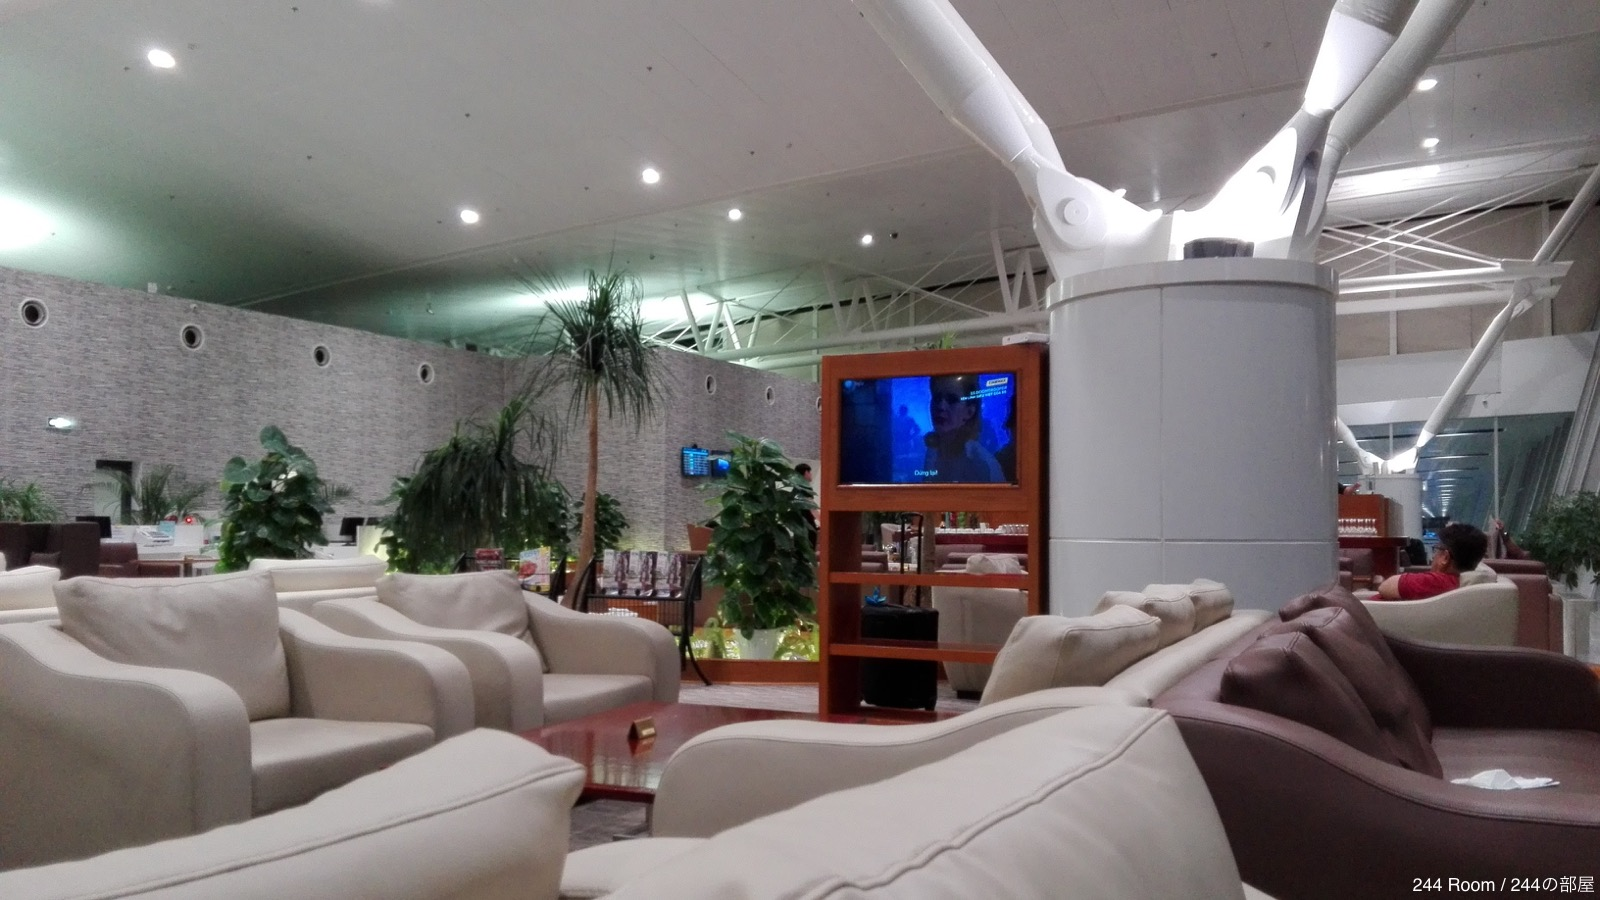 Noibai-airport-Business-Lounge-room